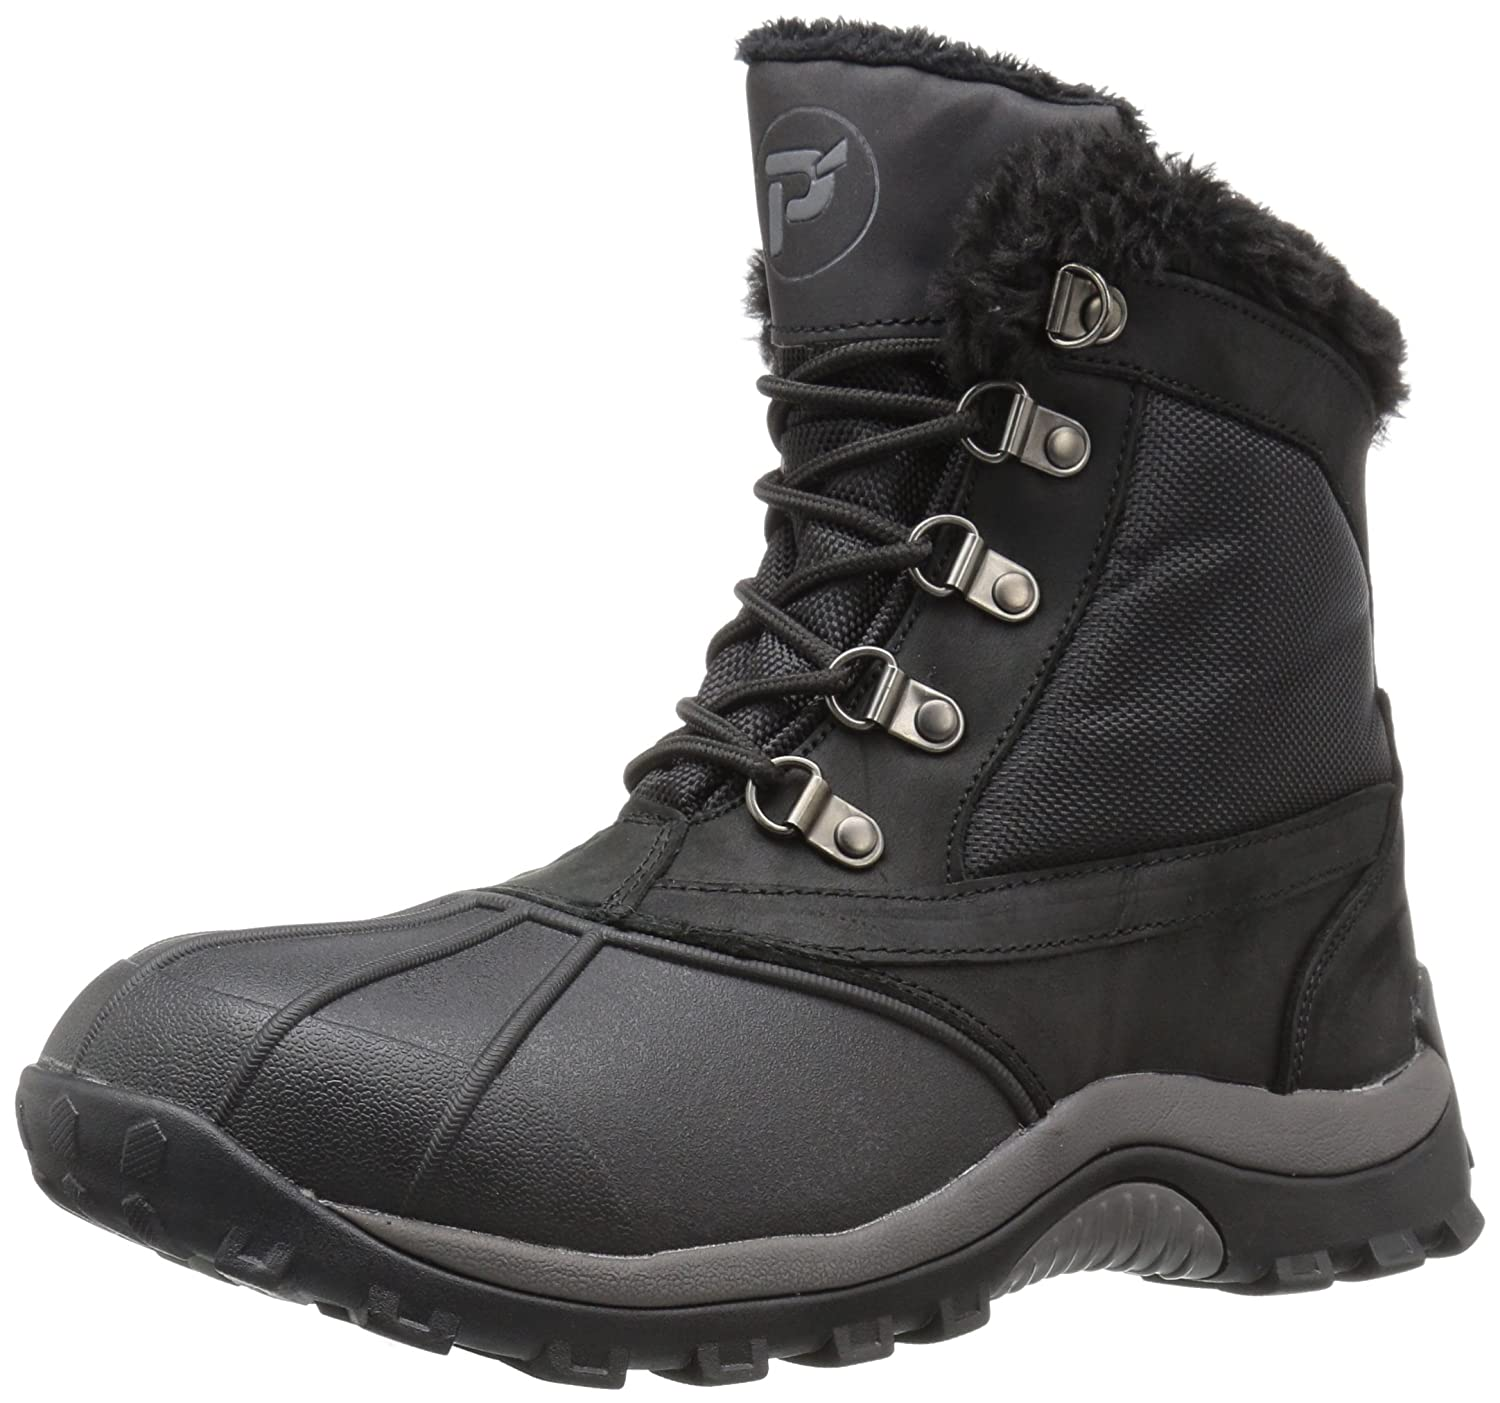 Propet Women's Blizzard Mid Lace Ii Winter Boot B01AYP34M6 8 2E US|Black/Nylon